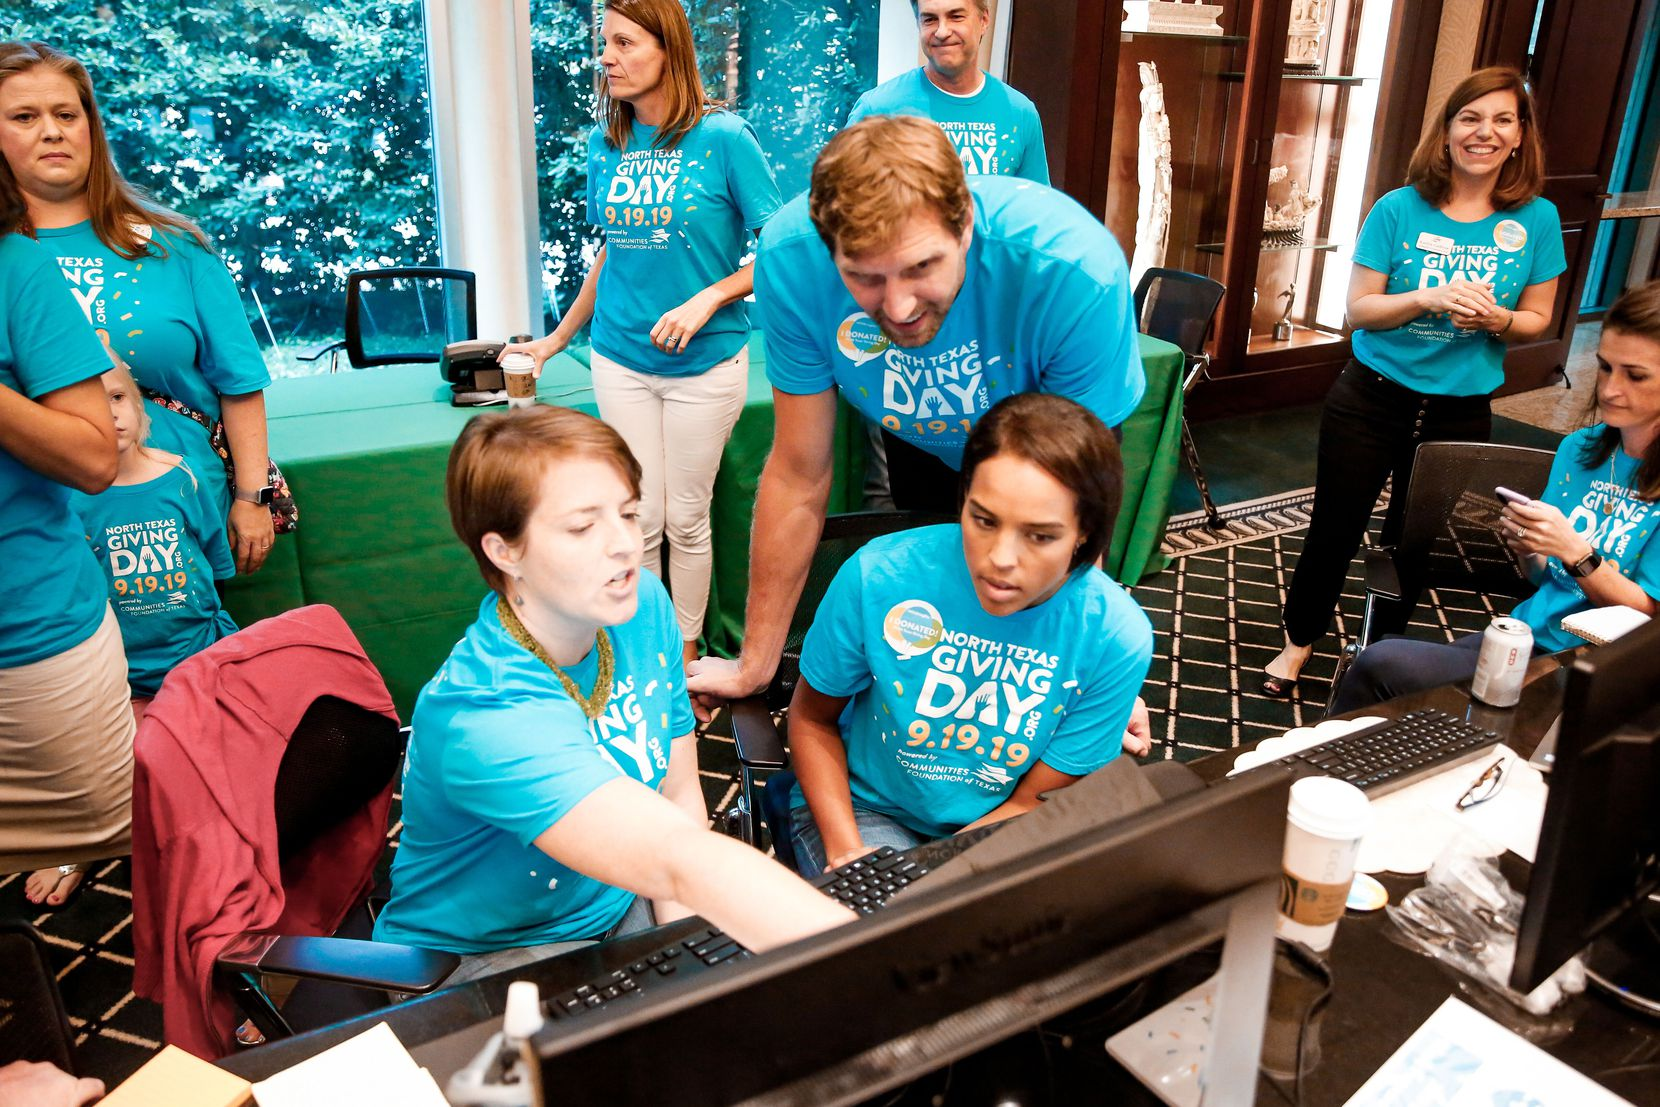 Dallas Mavericks legend Dirk Nowitzki and his wife Jessica (right) monitor totals during North Texas Giving Day.